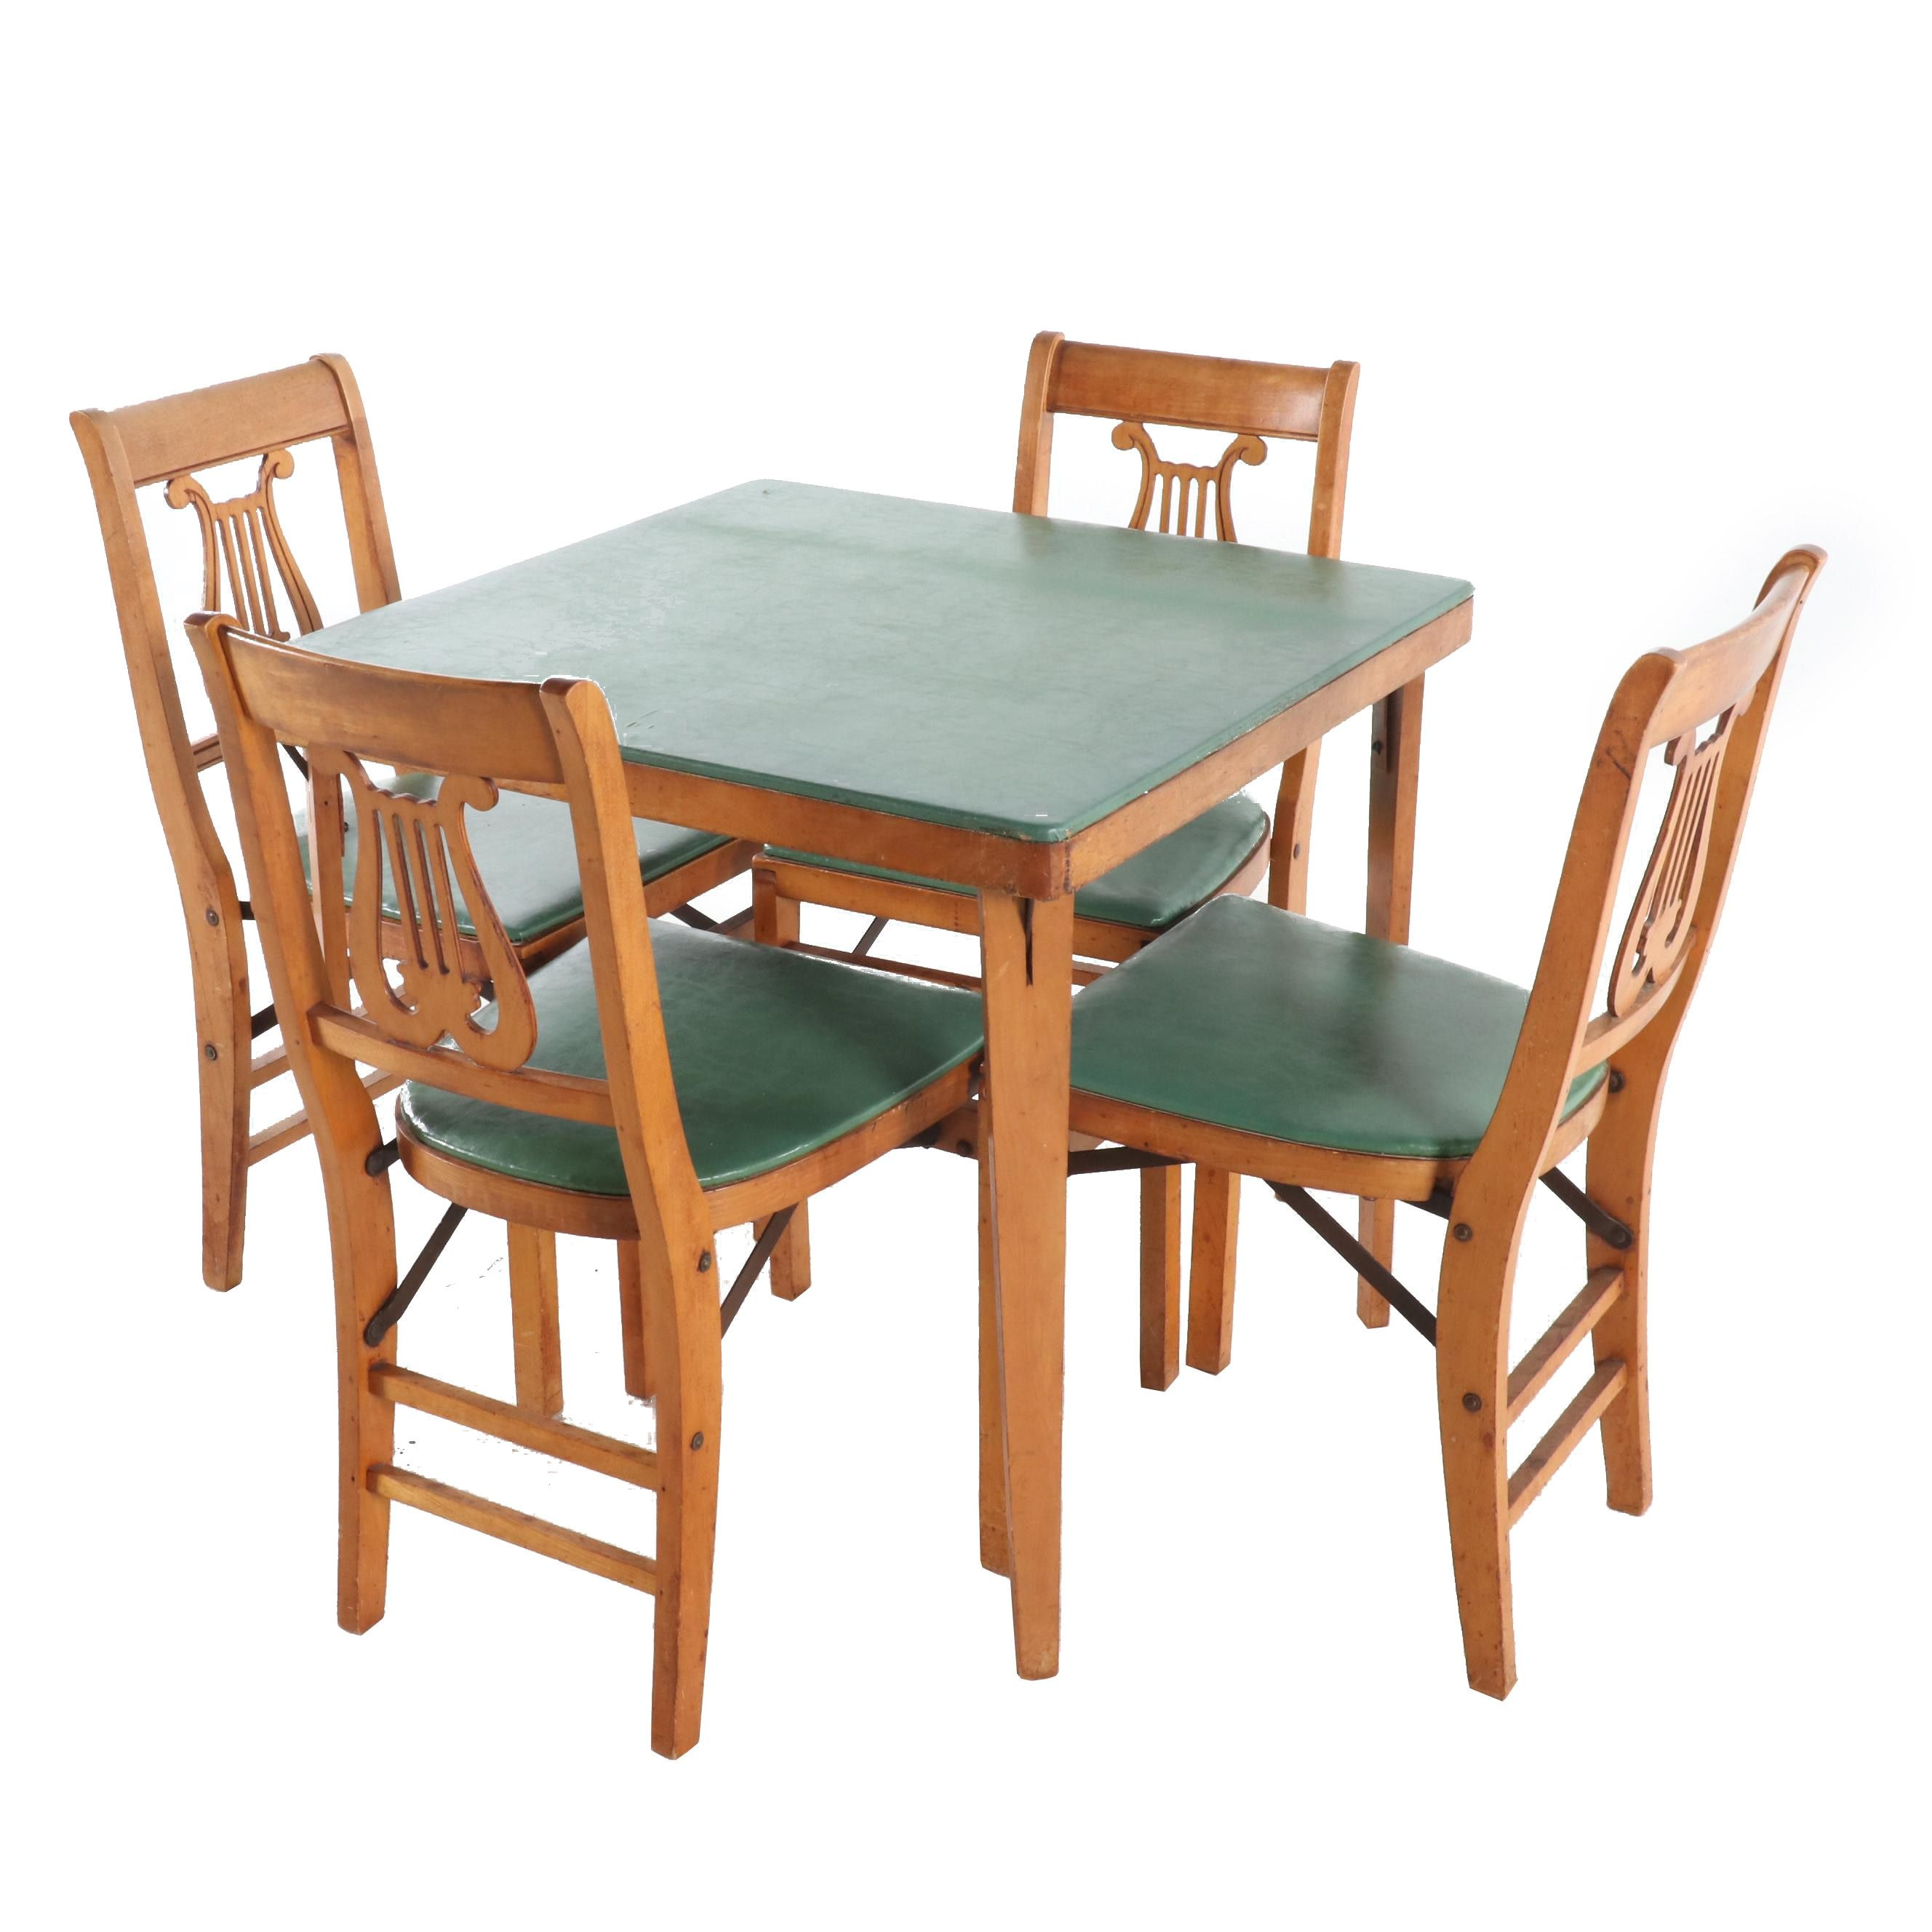 Stakmore Maple Folding Game Table and Four Chairs